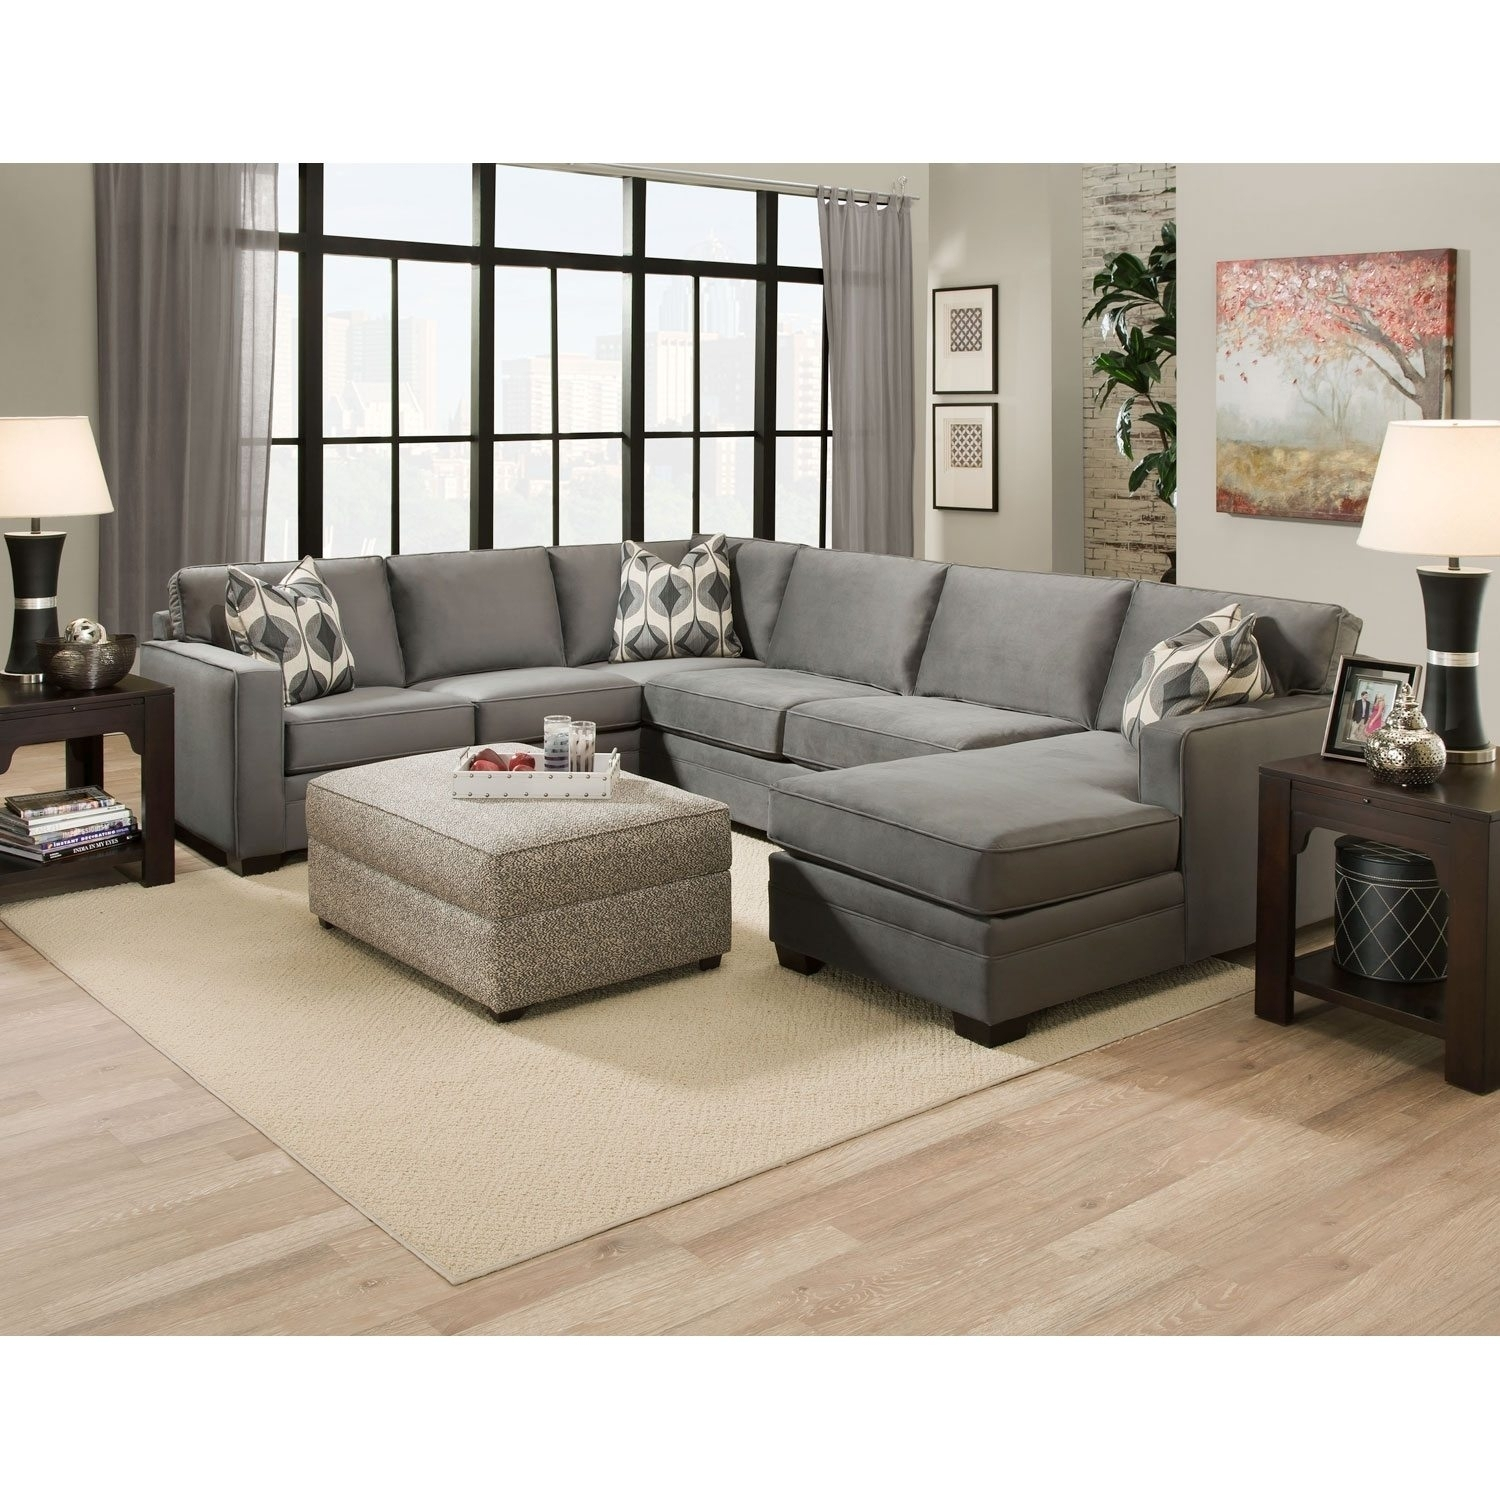 lane sectionals sofas sam s club. Black Bedroom Furniture Sets. Home Design Ideas